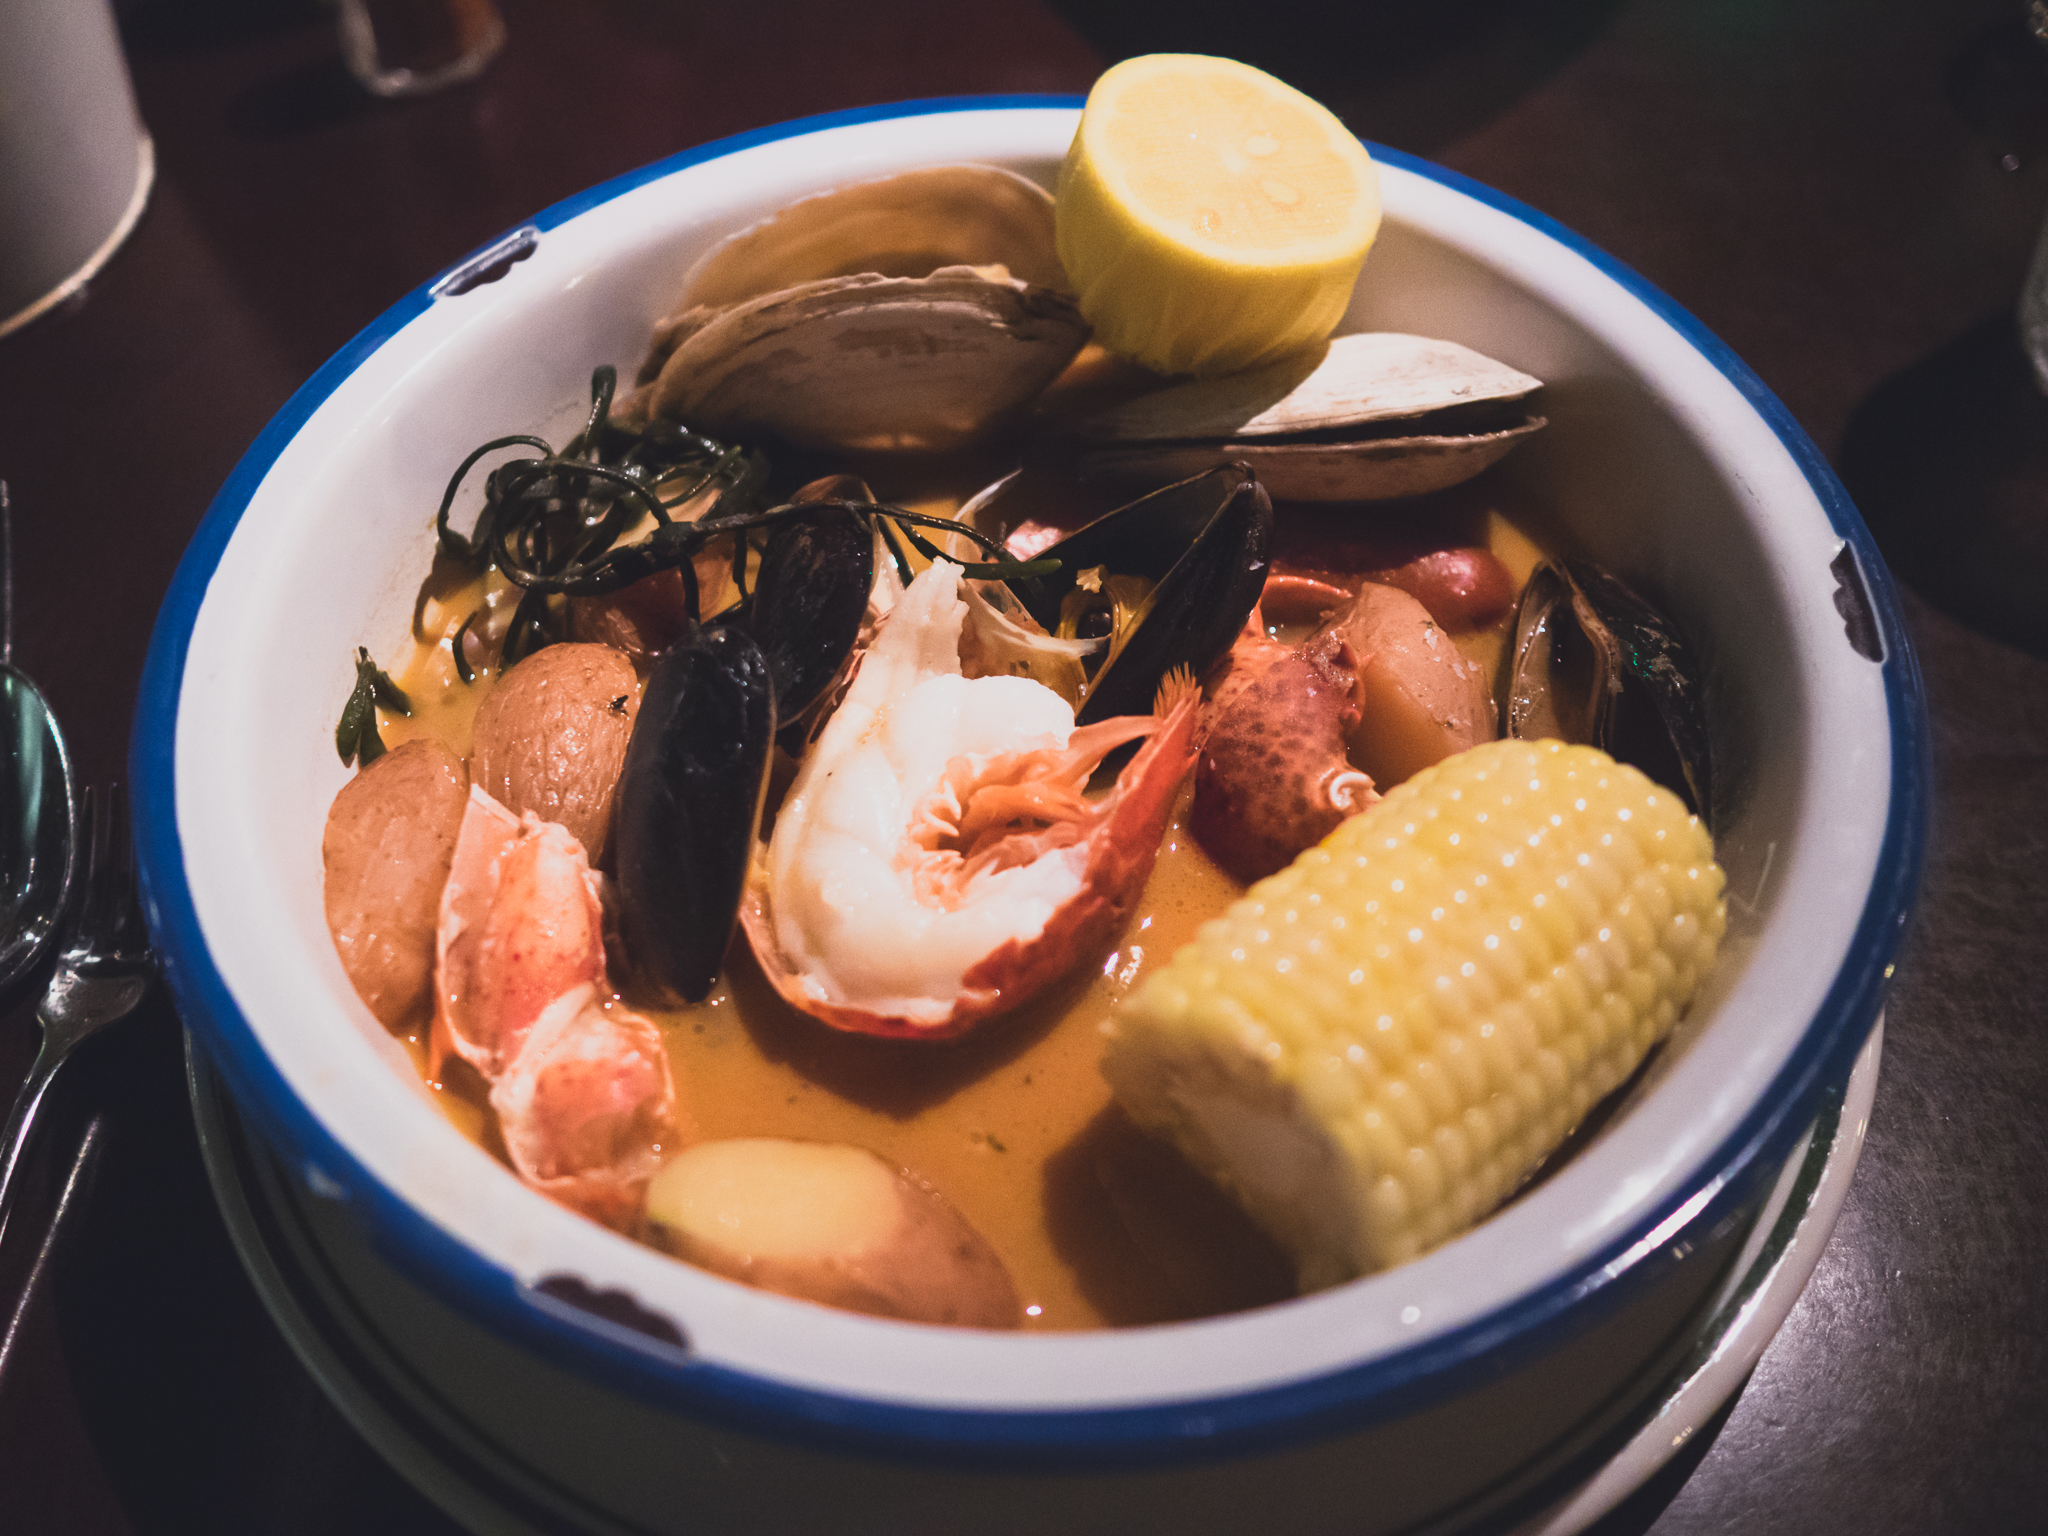 new england boiled dinner  with mussels, steamers, lobster, linguiça, potatoes, steamed corn.